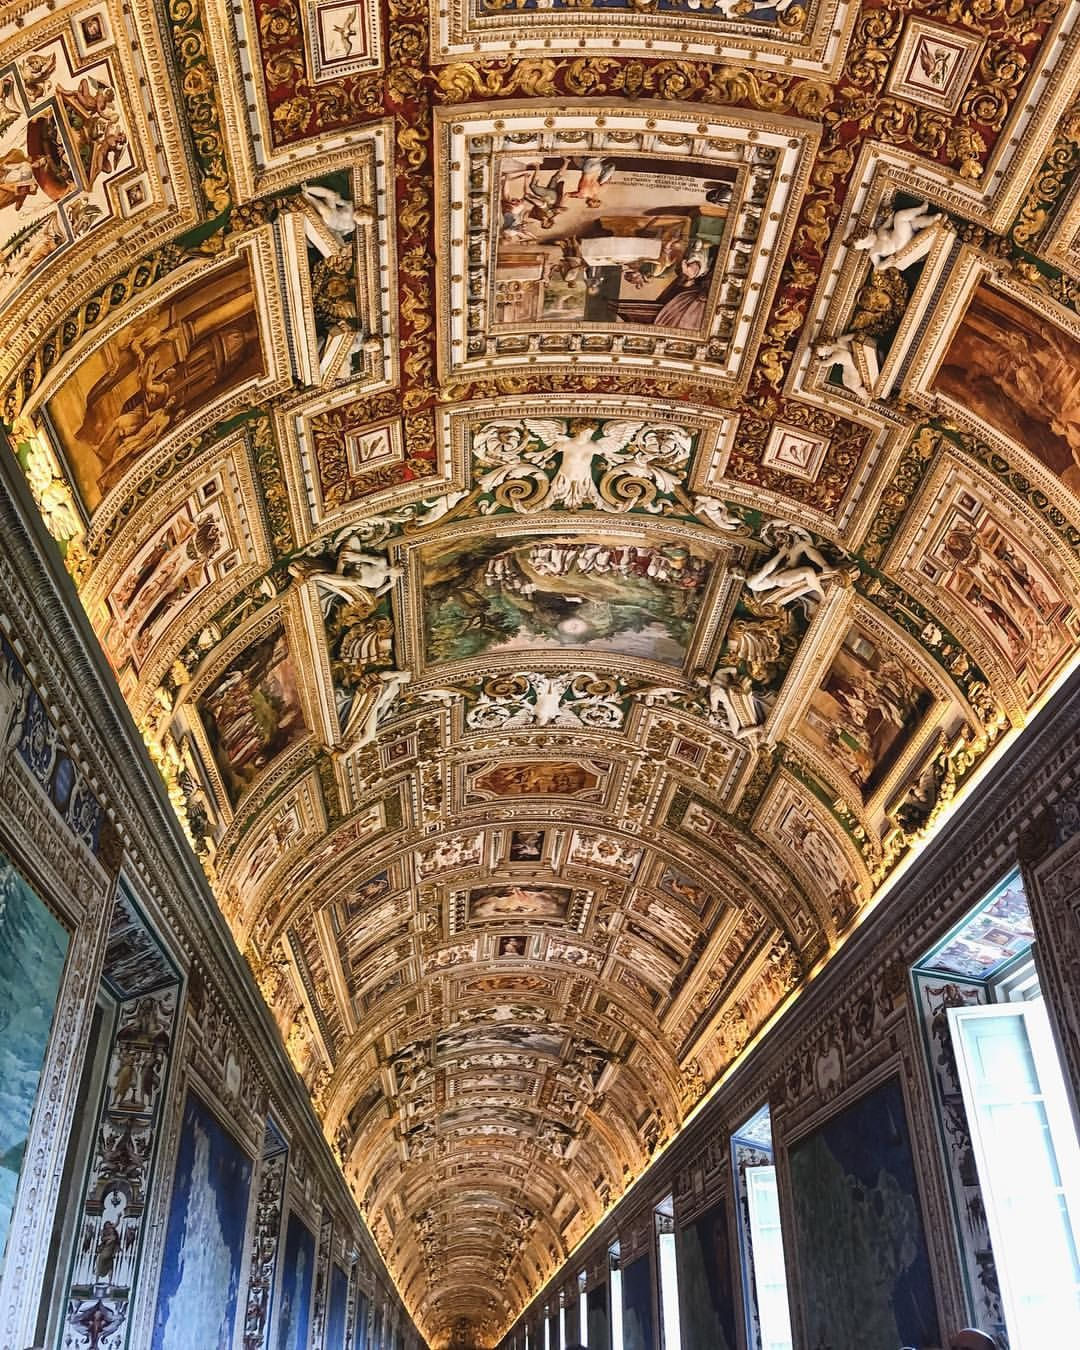 6. The Vatican Museum Is A Must See While In Rome. There